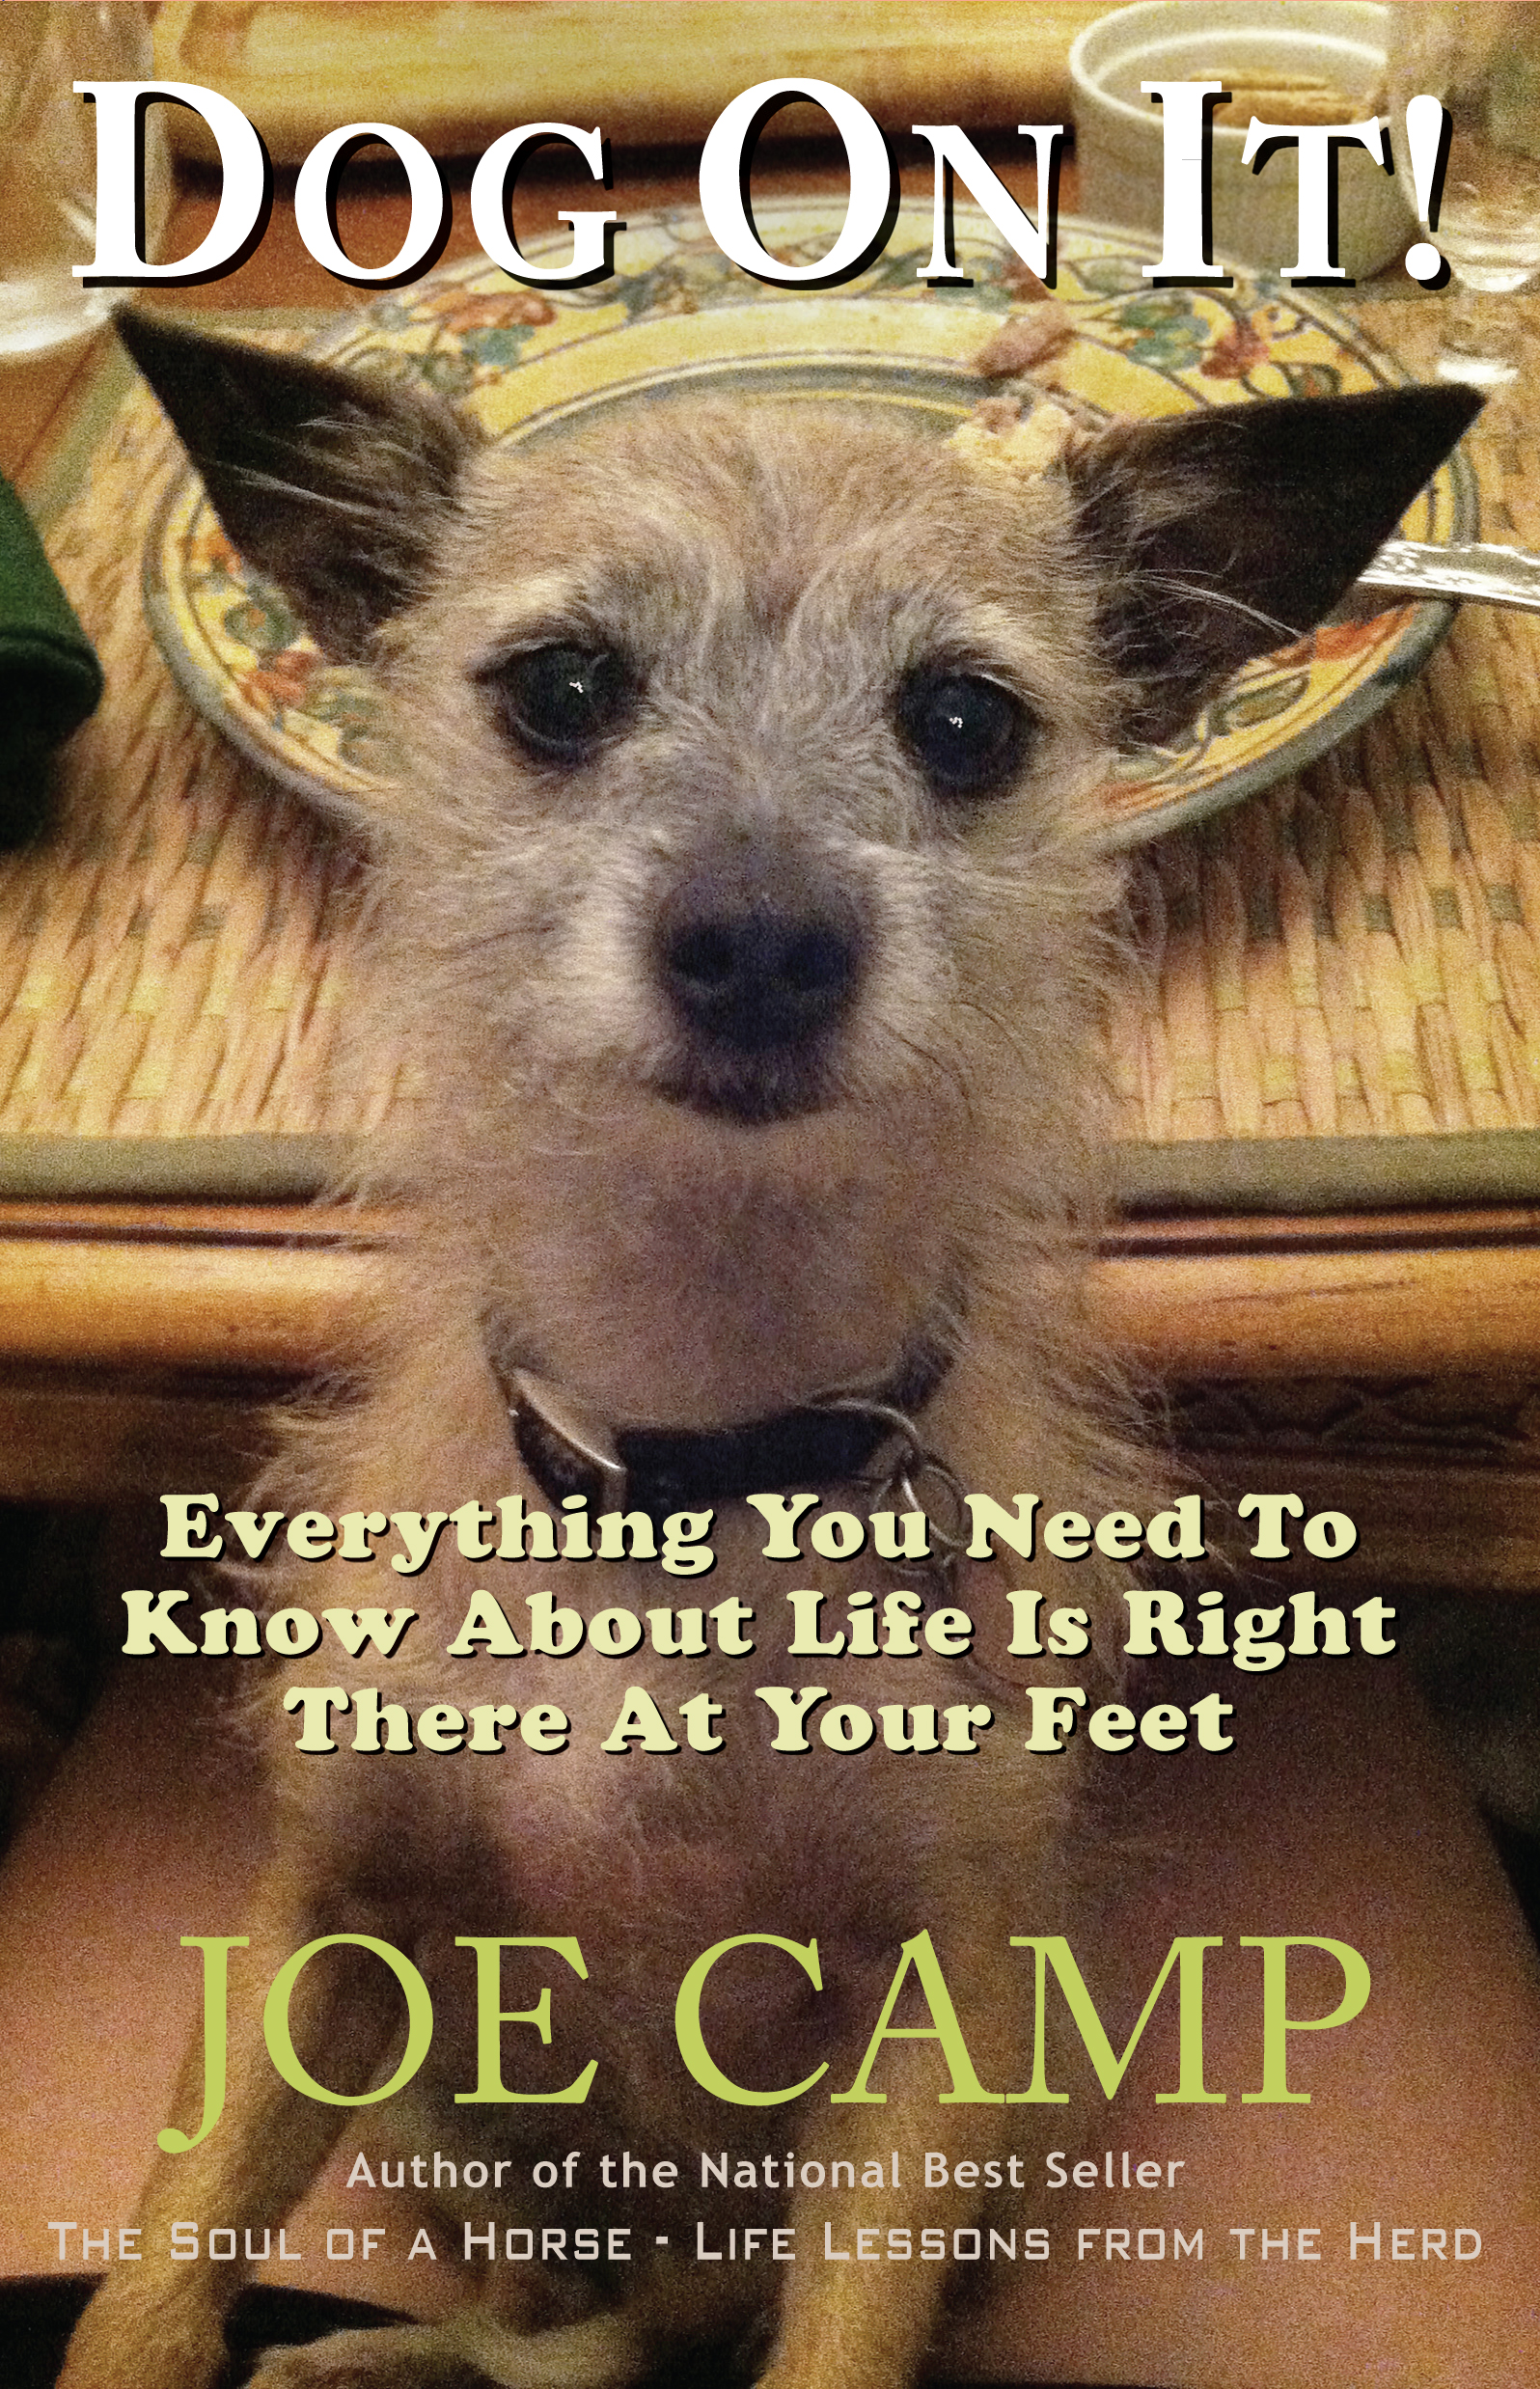 Dog On It! - Everything You Need to Know About Life Is Right There at Your Feet - Personally Inscribed